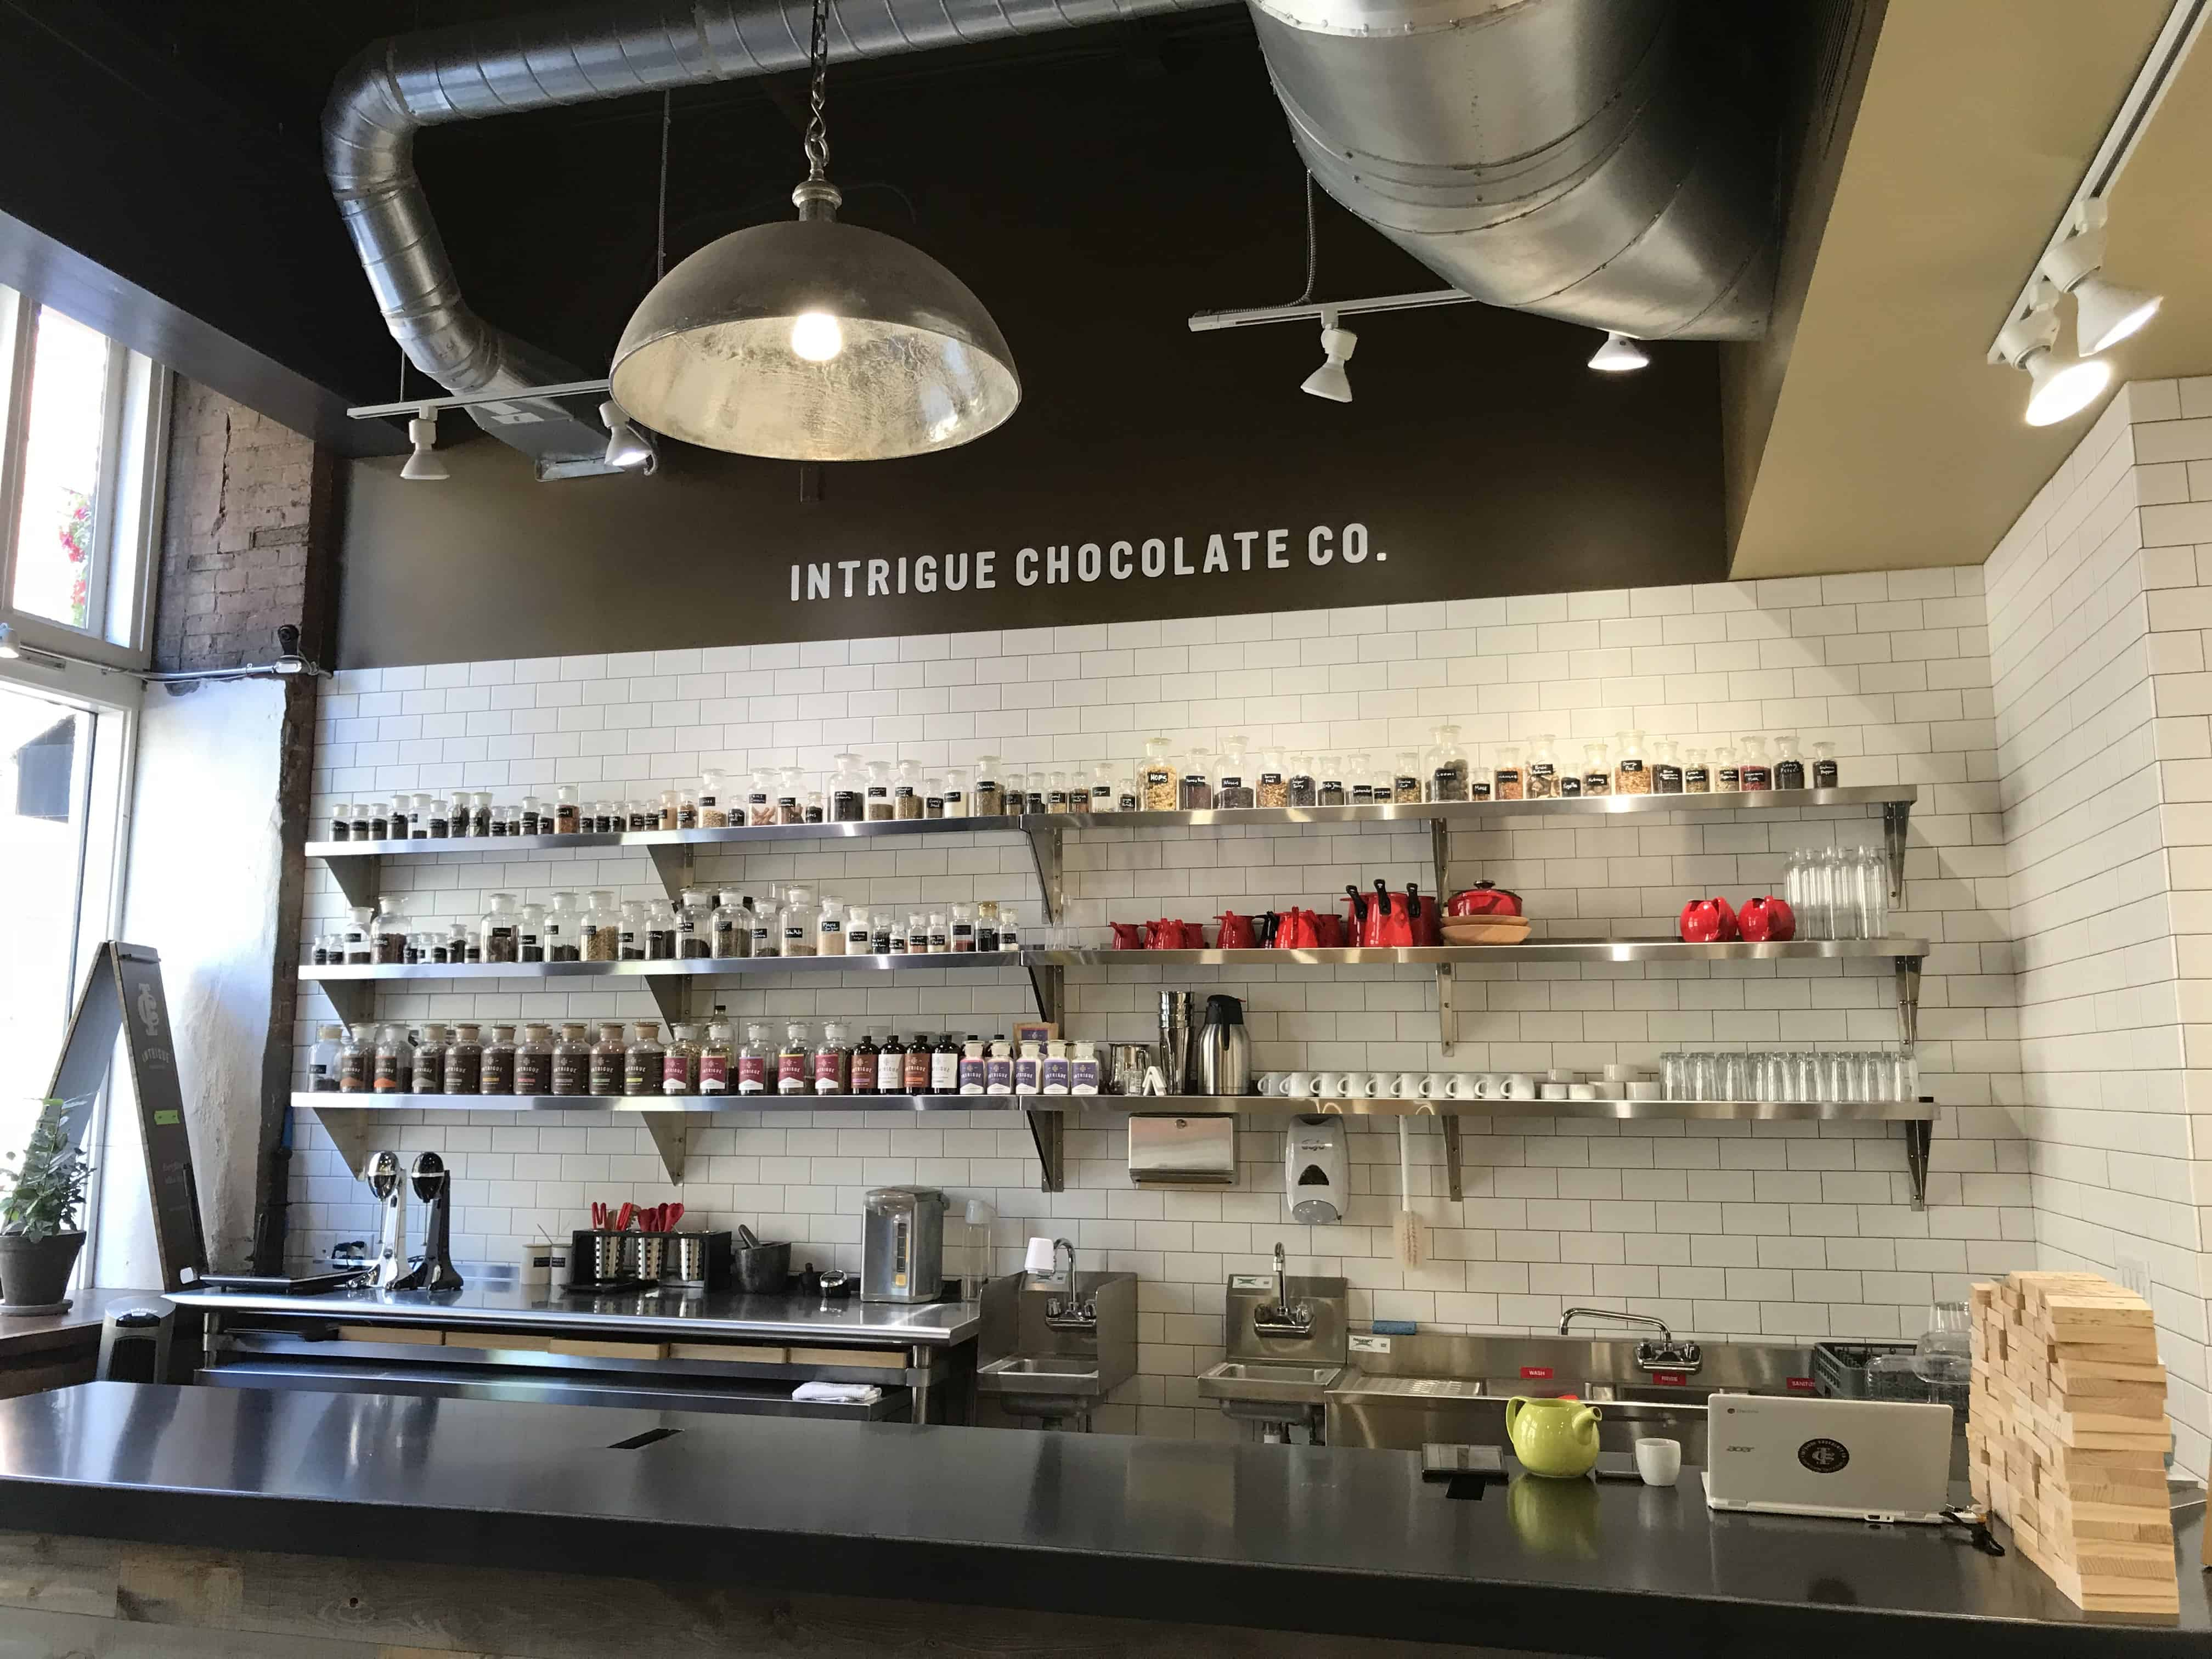 Intrigue Chocolate Company Beverage Bar